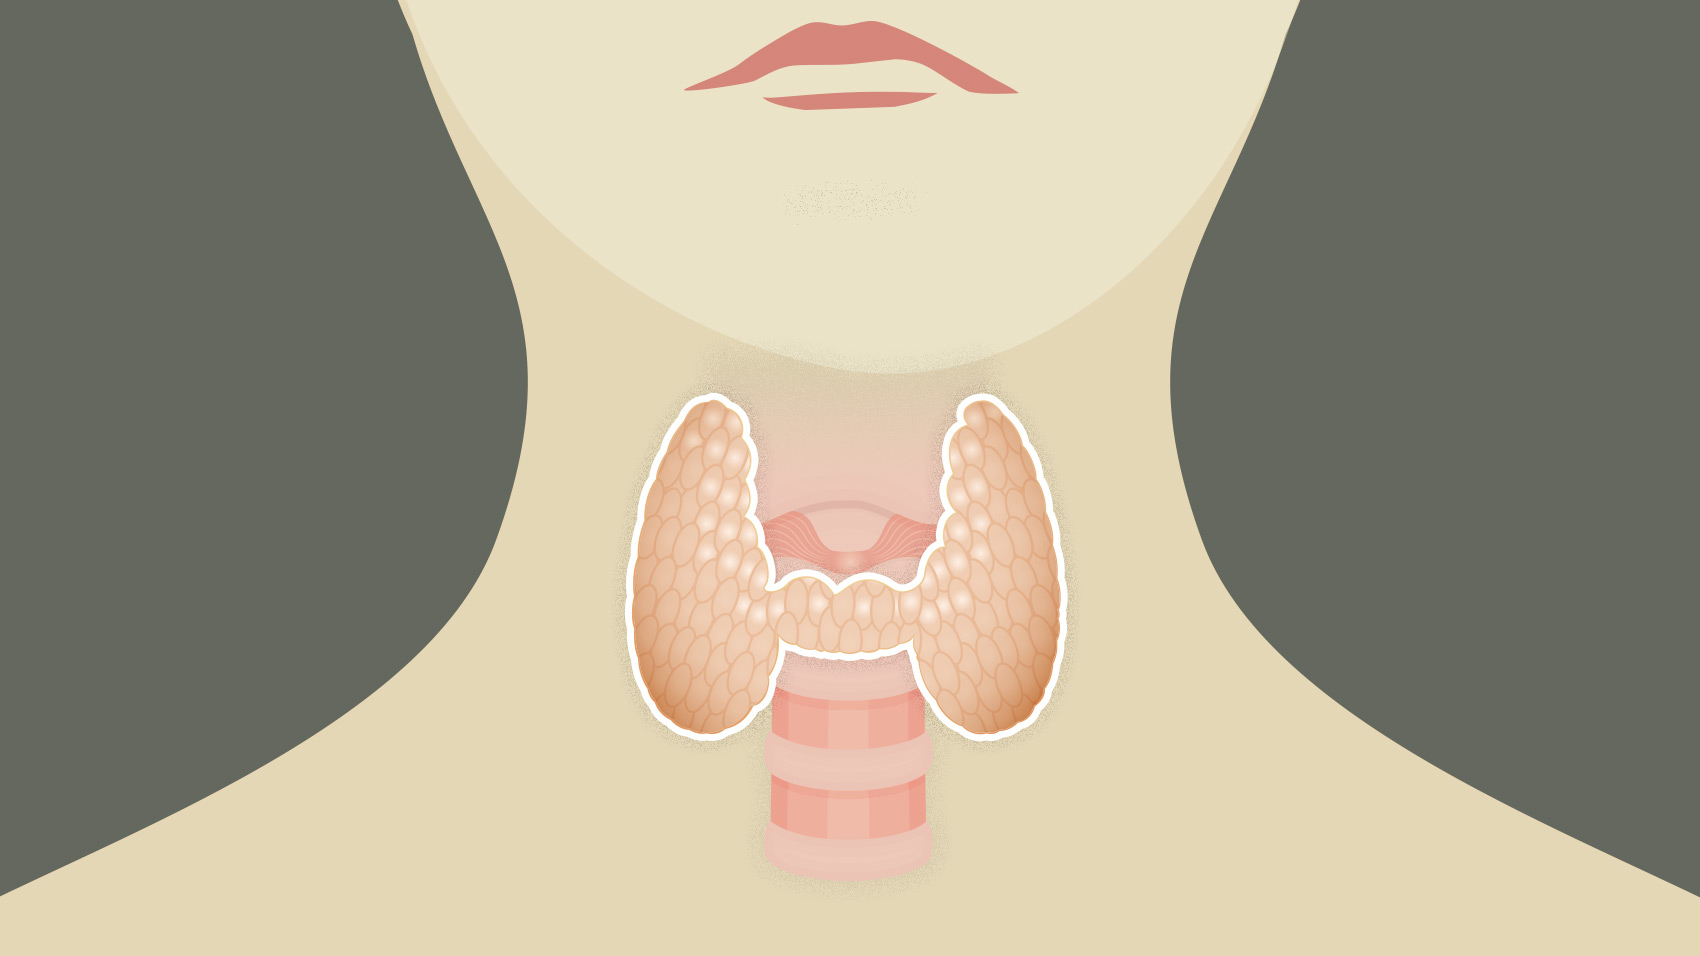 thyroid cancer Thyroid cancer is relatively uncommon compared to other cancers in the united states it is estimated that in 2016 approximately 64,000 new patients will be diagnosed with thyroid cancer, compared to over 240,000 patients with breast cancer and 135,000 patients with colon cancer.